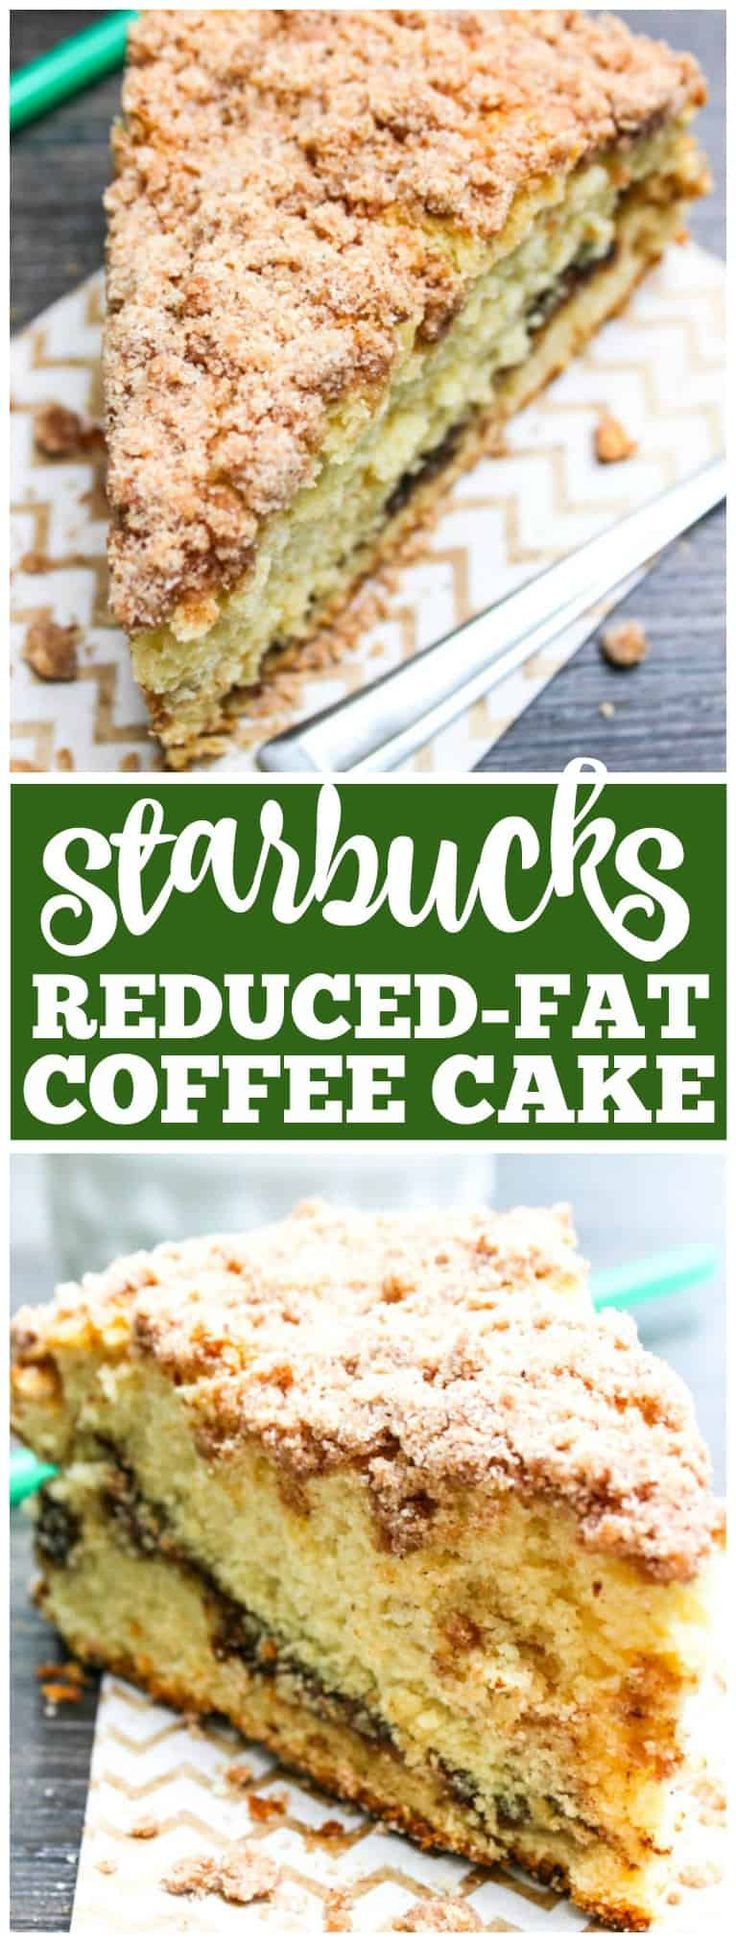 Reduced-Fat Cinnamon Swirl Coffee Cake - Cinnamon swirl coffee cake with crumb topping, it's just like the one they serve at Starbucks but even better! #starbucks #coffeecake #breakfast #brunch #breakfastrecipes